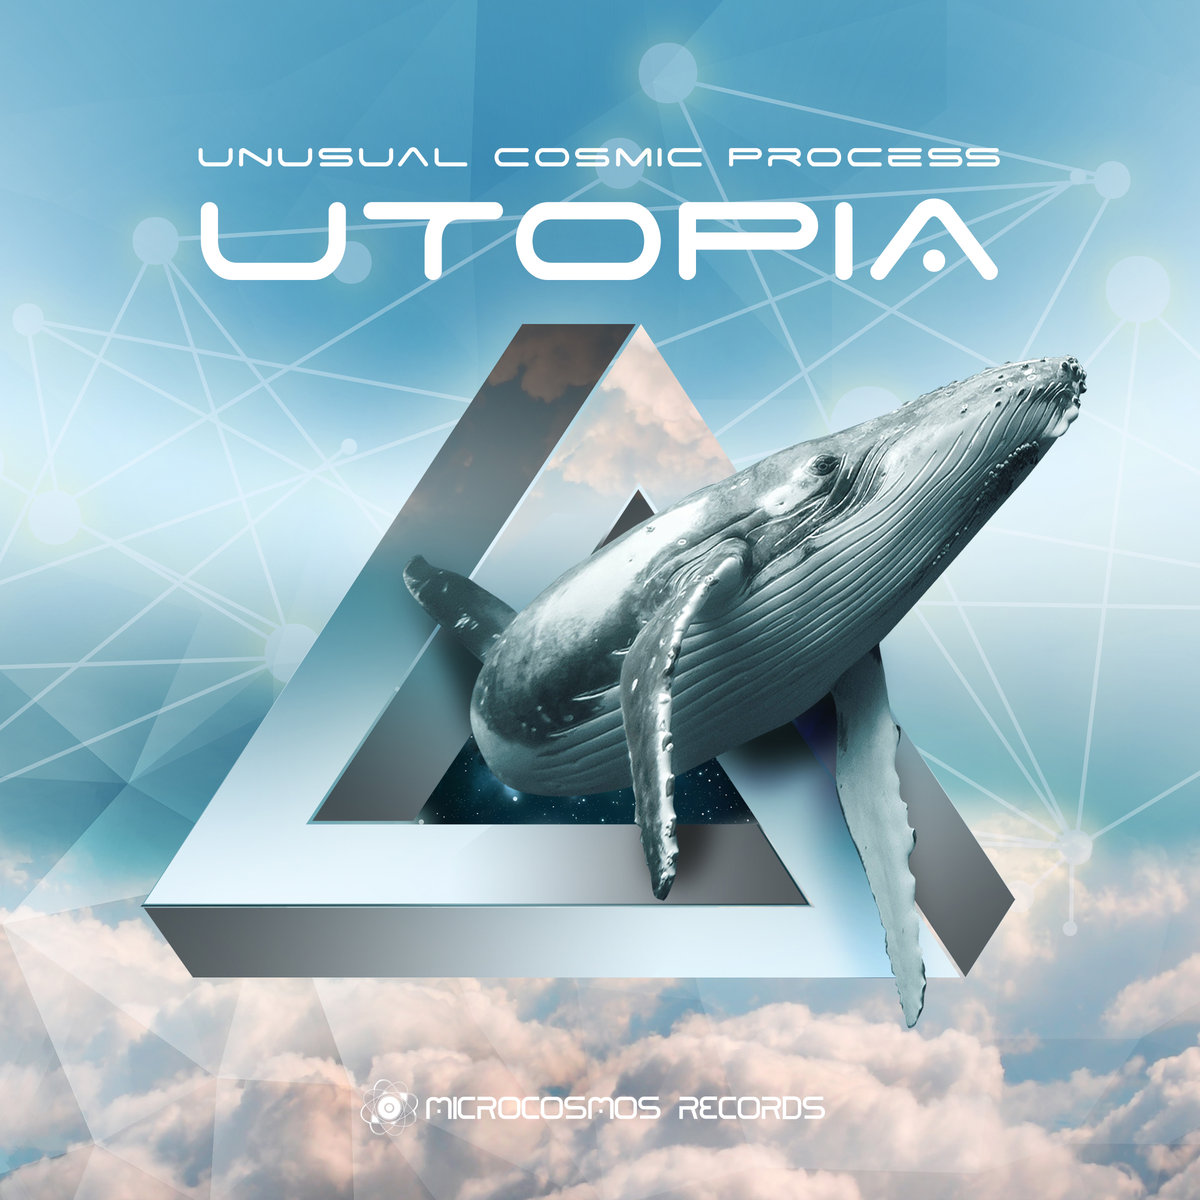 Unusual Cosmic Process - Utopia